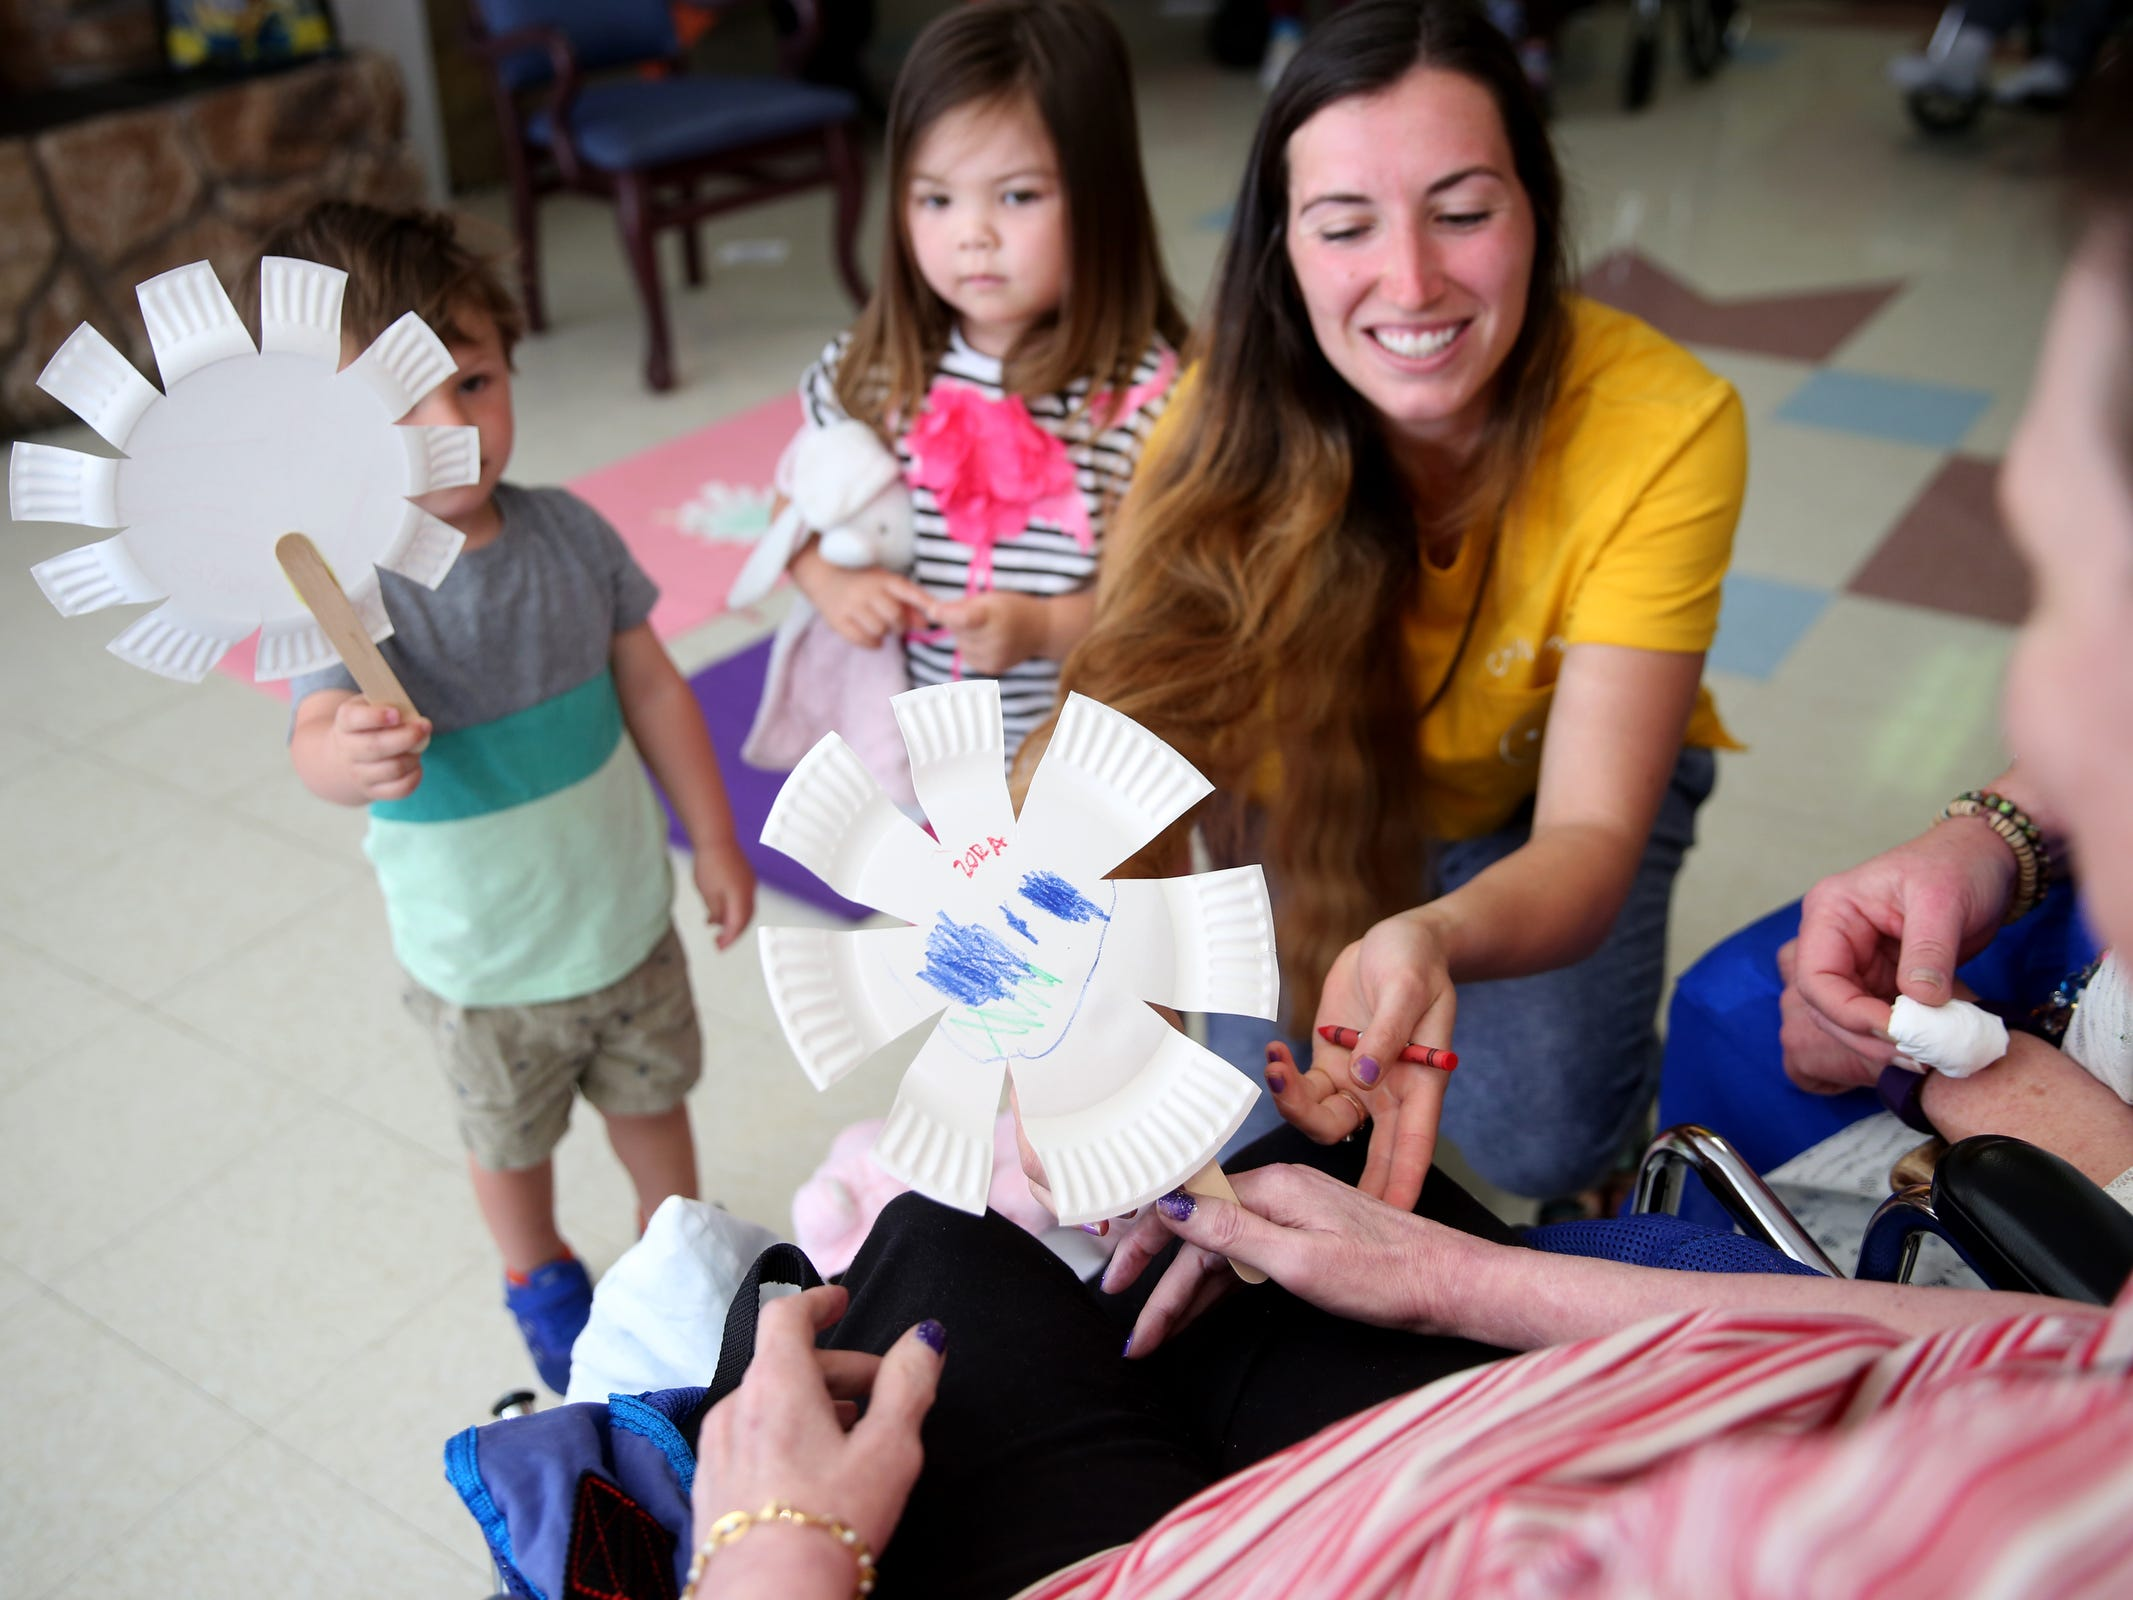 "Makenzie Pineda helps Mateo Pineda, 2, and Zora Thaggard, 3, give paper plate shaped like flowers they had colored to a woman during a visit by the Friendship Brigade, a group that focuses on intergenerational programming, at Avamere Transitional Care at Sunnyside in Salem on May 6, 2019. Once a week, ""Storytime at Sunnyside"" brings preschoolers to the seniors for reading, singing, dancing and other playtime activities."